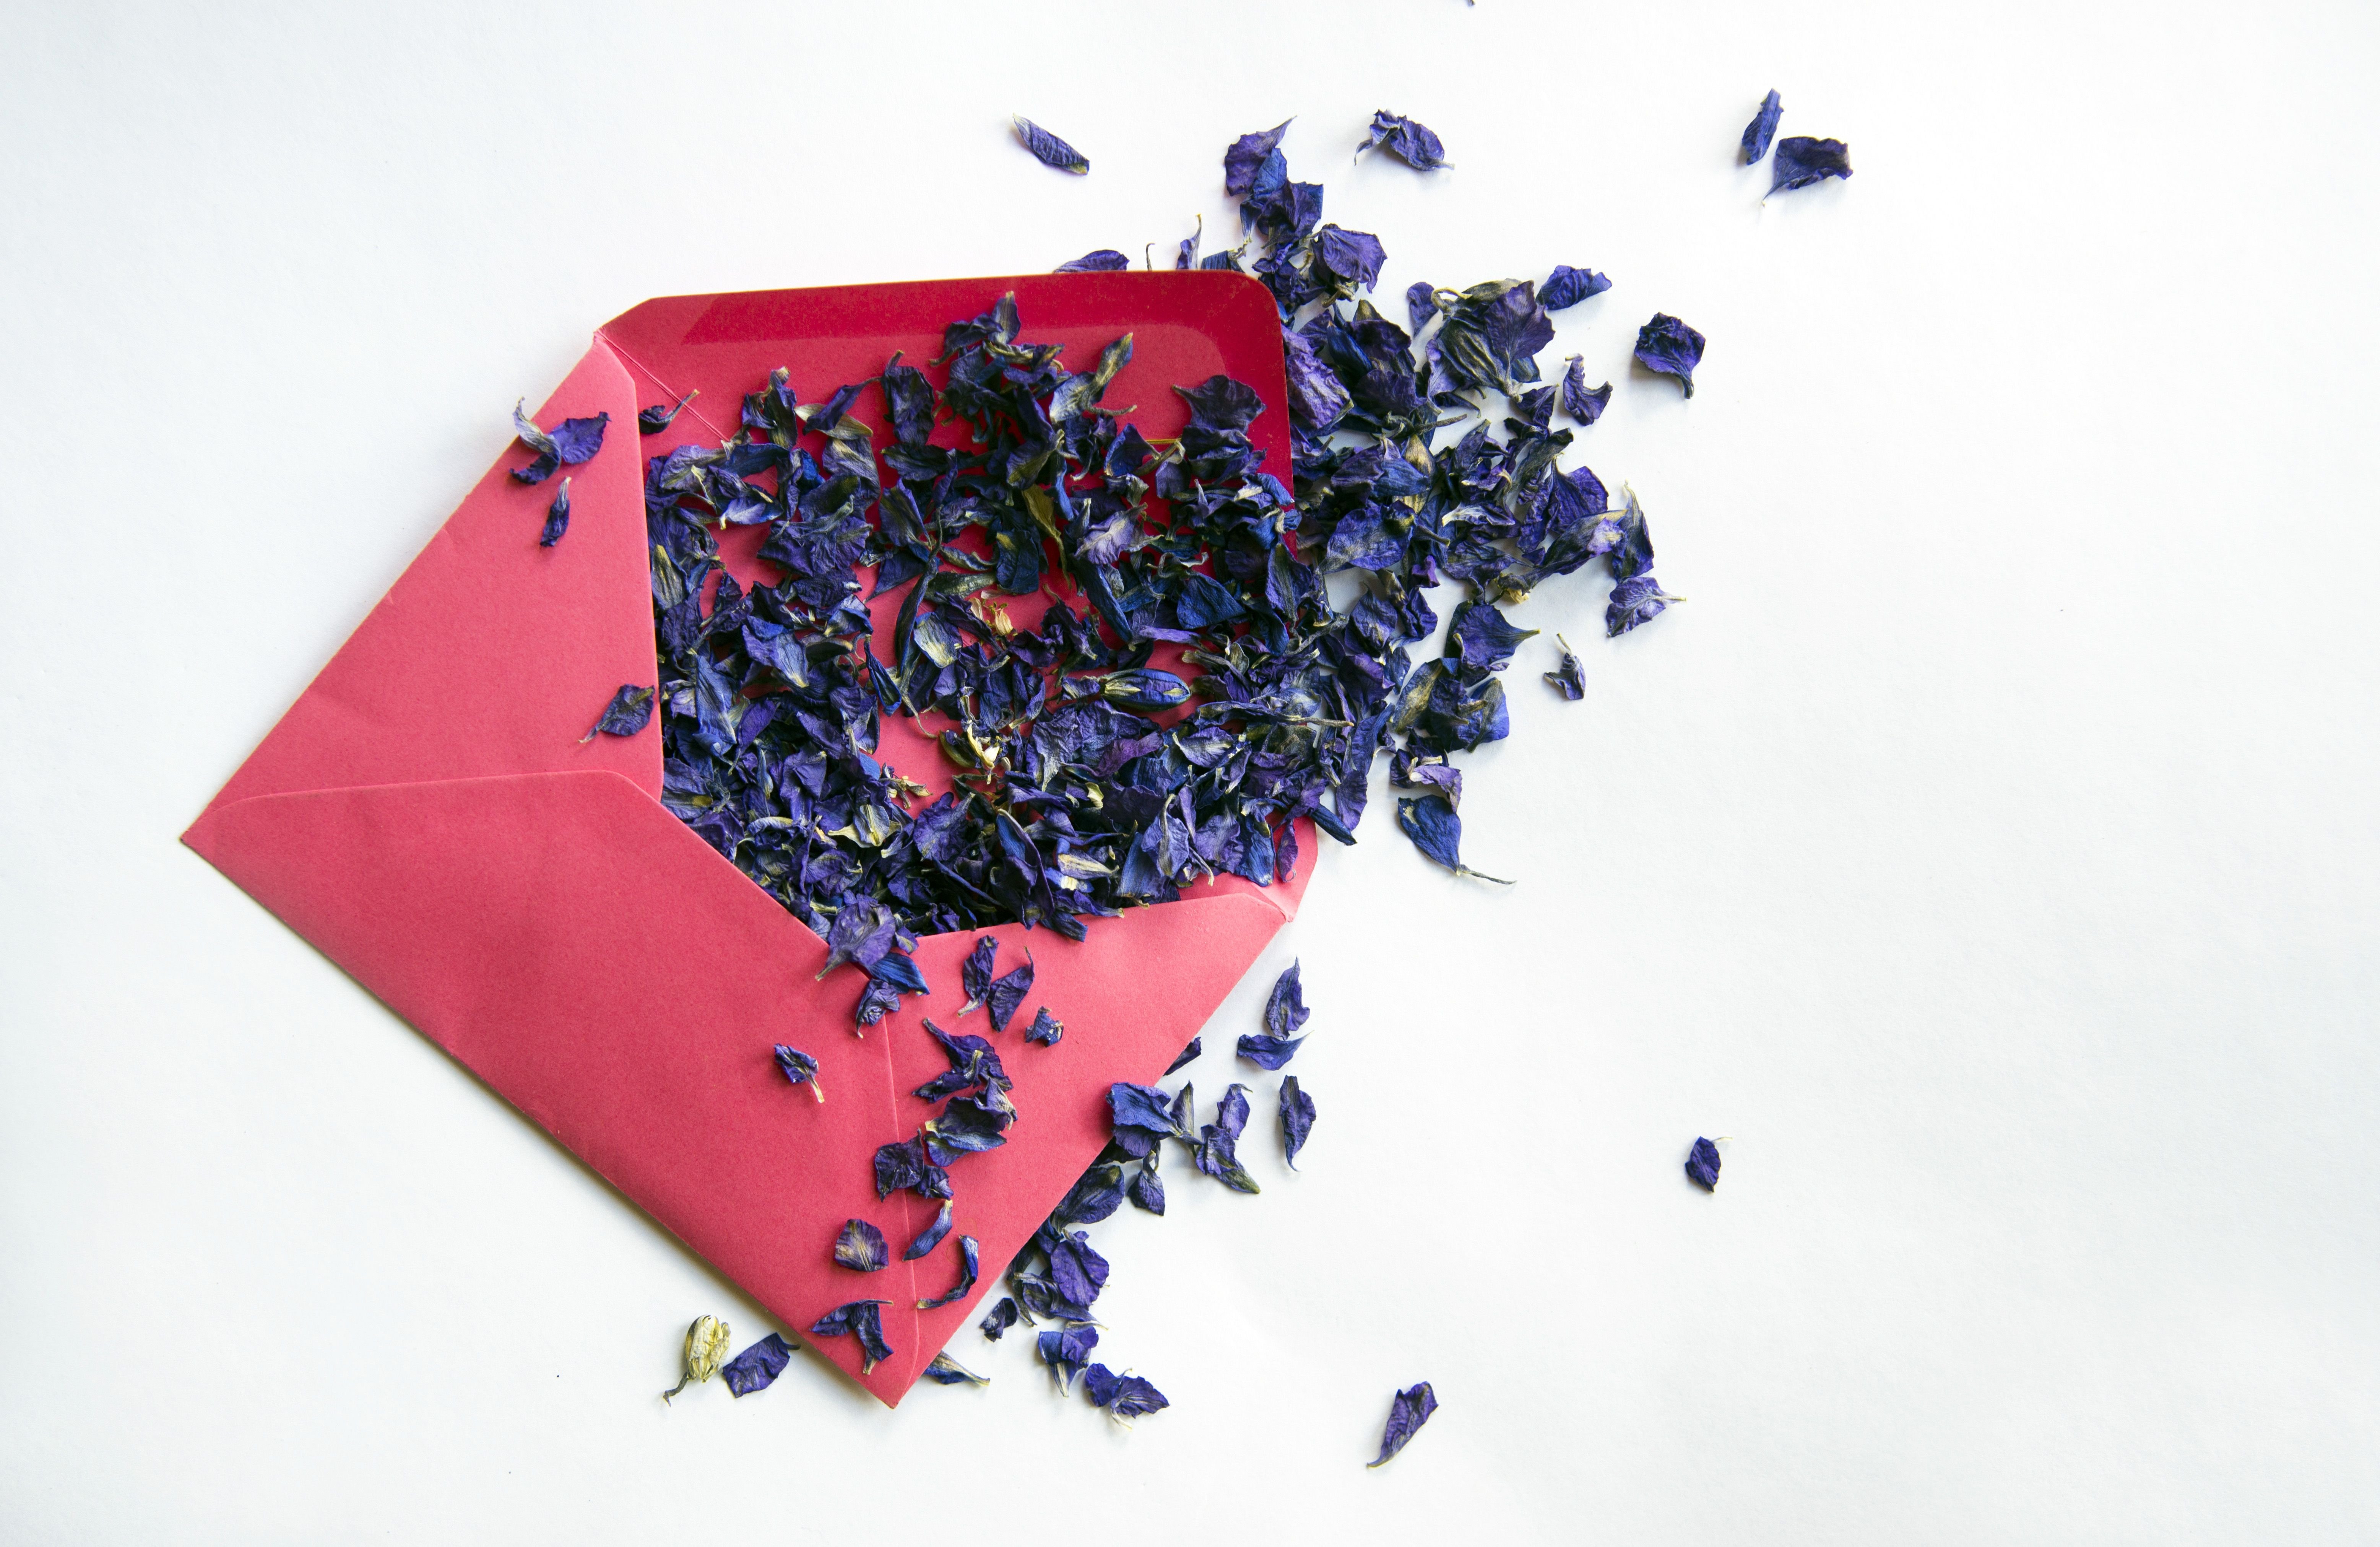 Greet each guest with an envelope of your favourite #confetti mix!